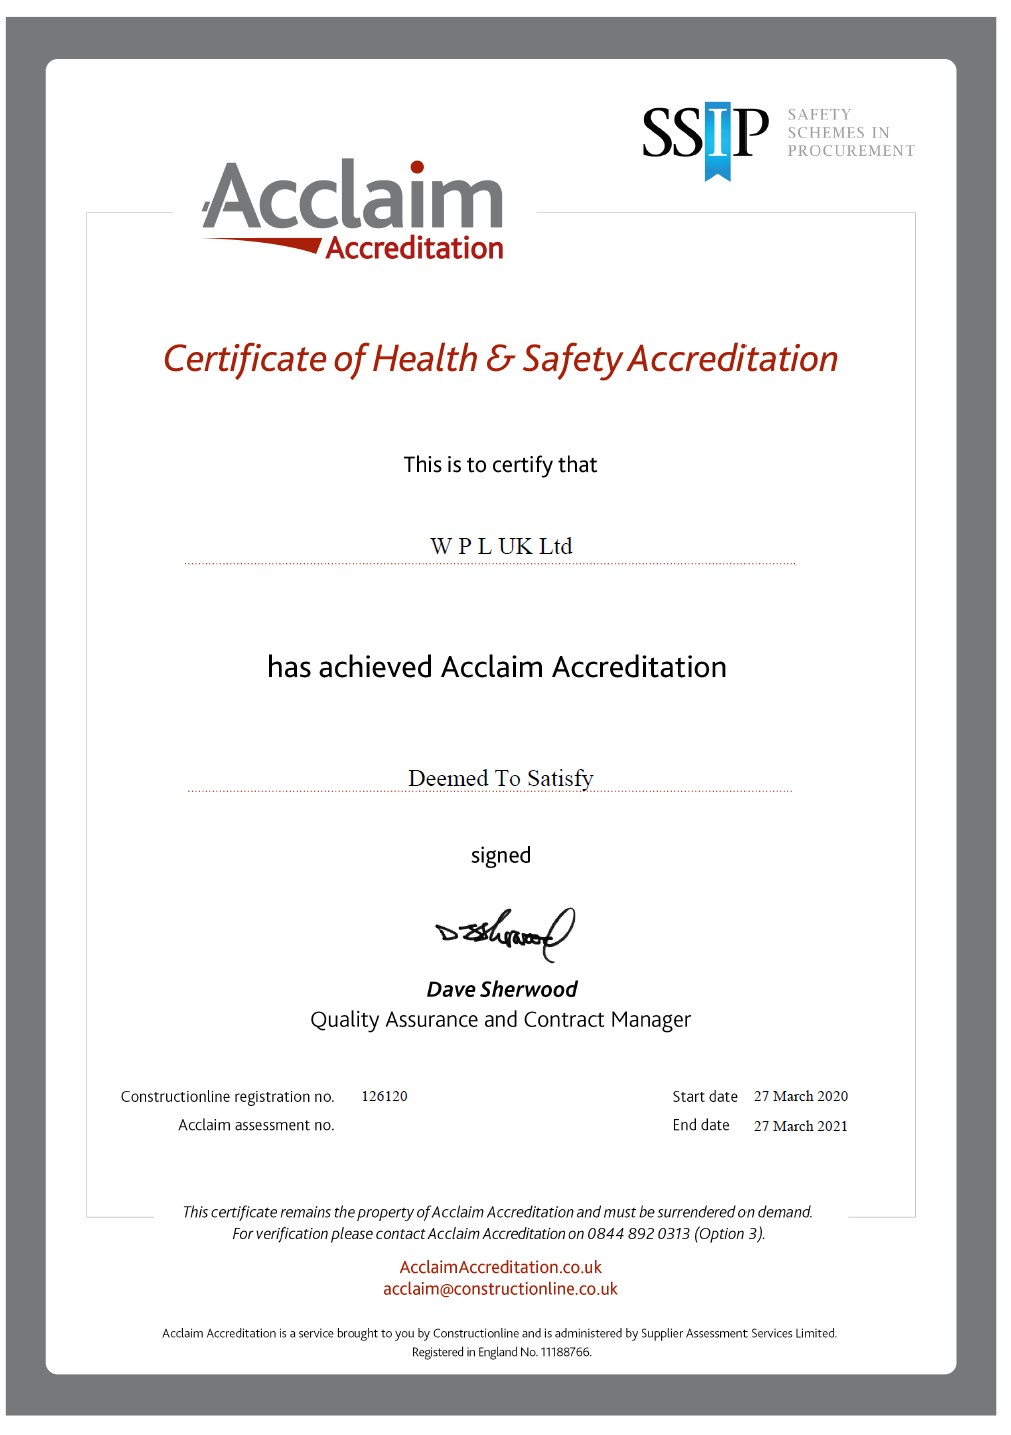 WPLUK SSIP Acclaim Accreditation Deem to Satisfy to 27th March 2021